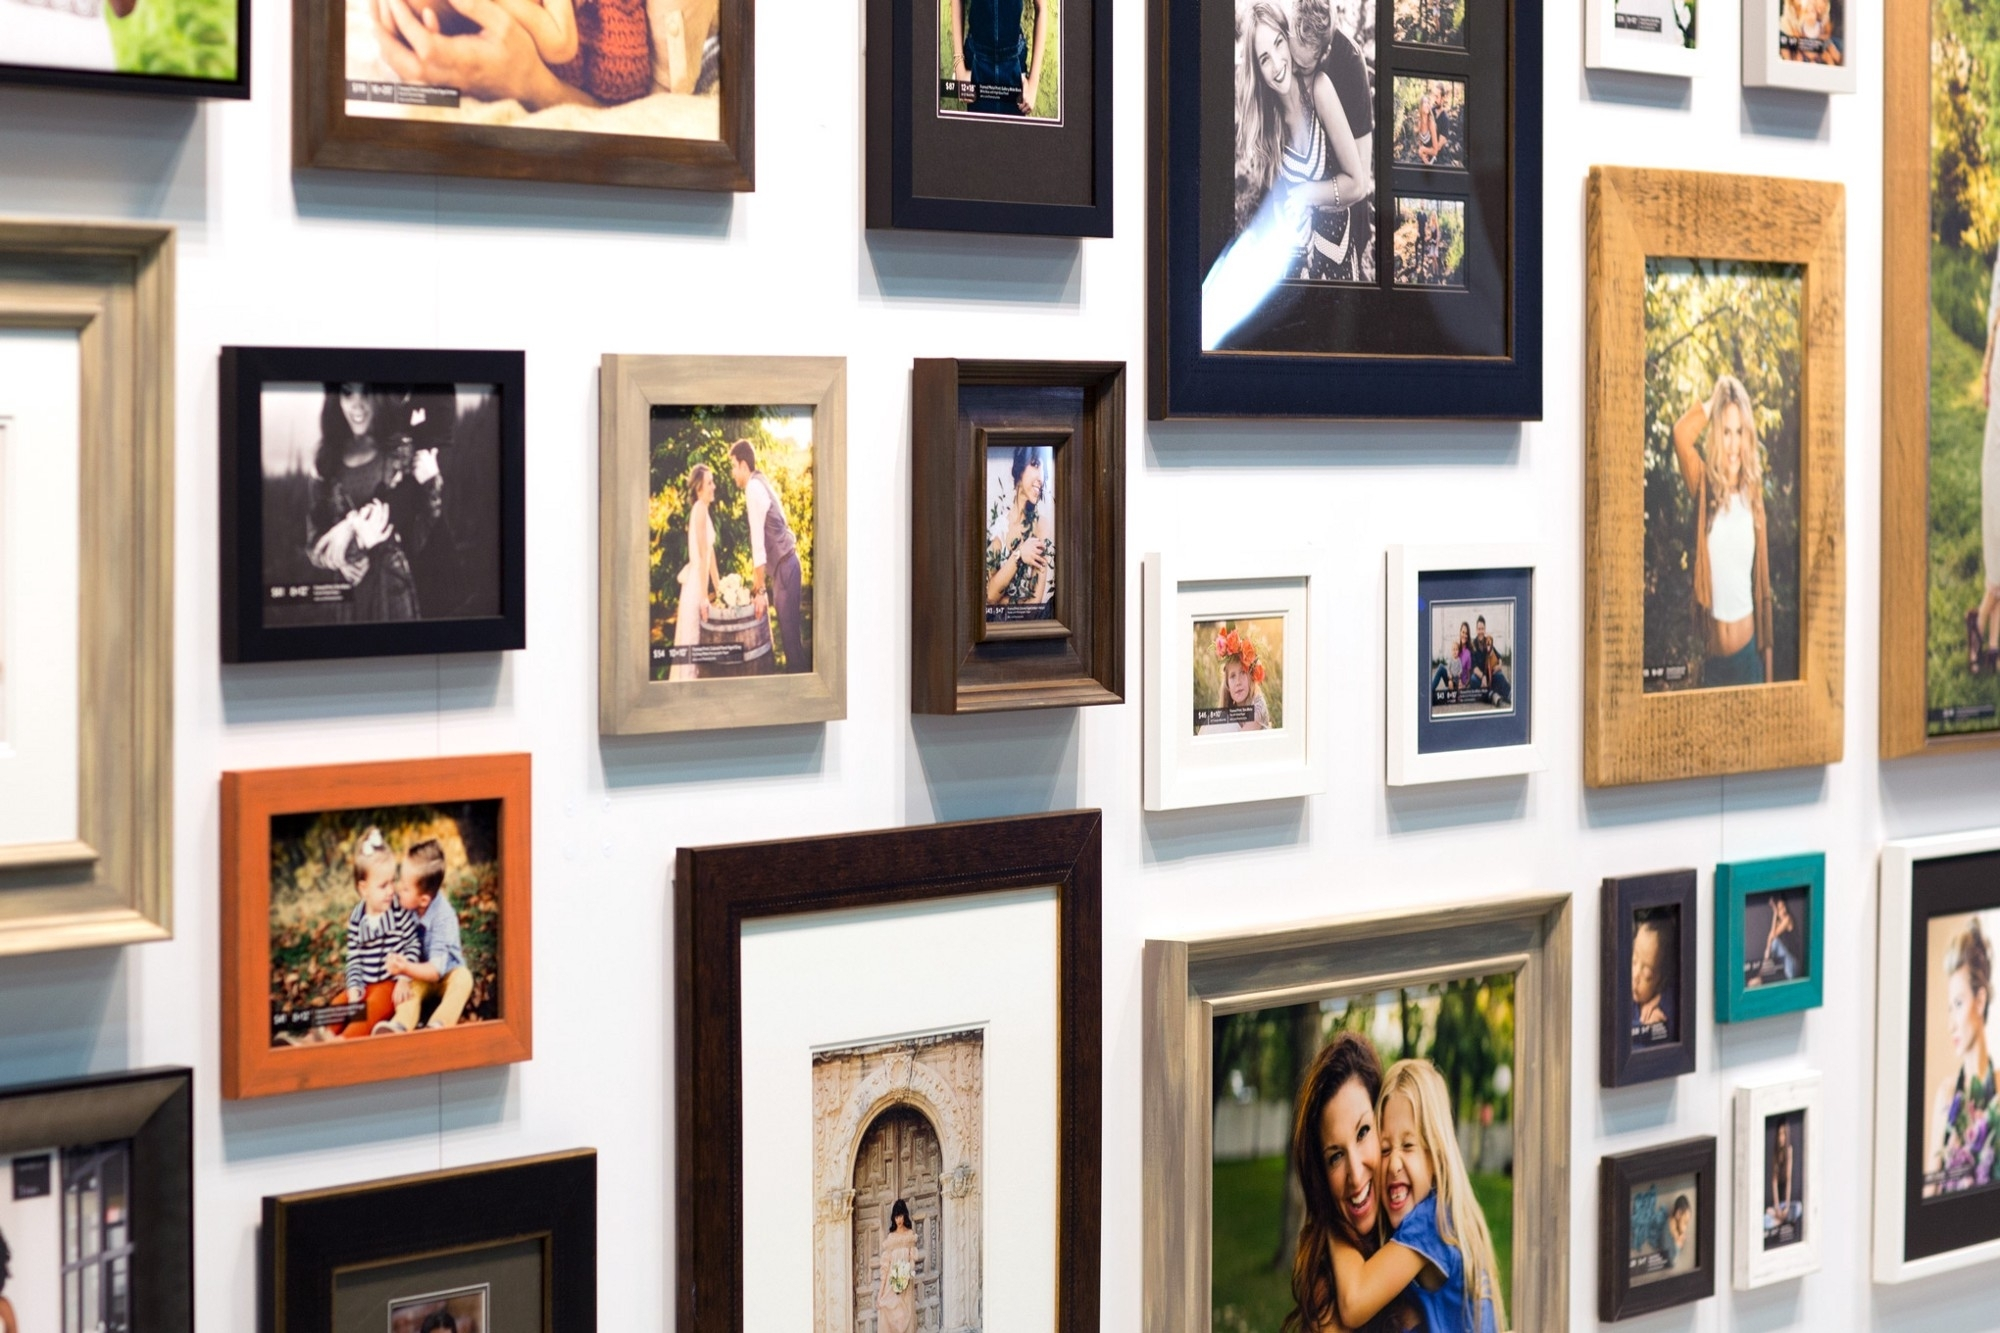 Explore Your Framed Print Options – Print Worthy Within Newest Framed And Matted Art Prints (View 6 of 15)